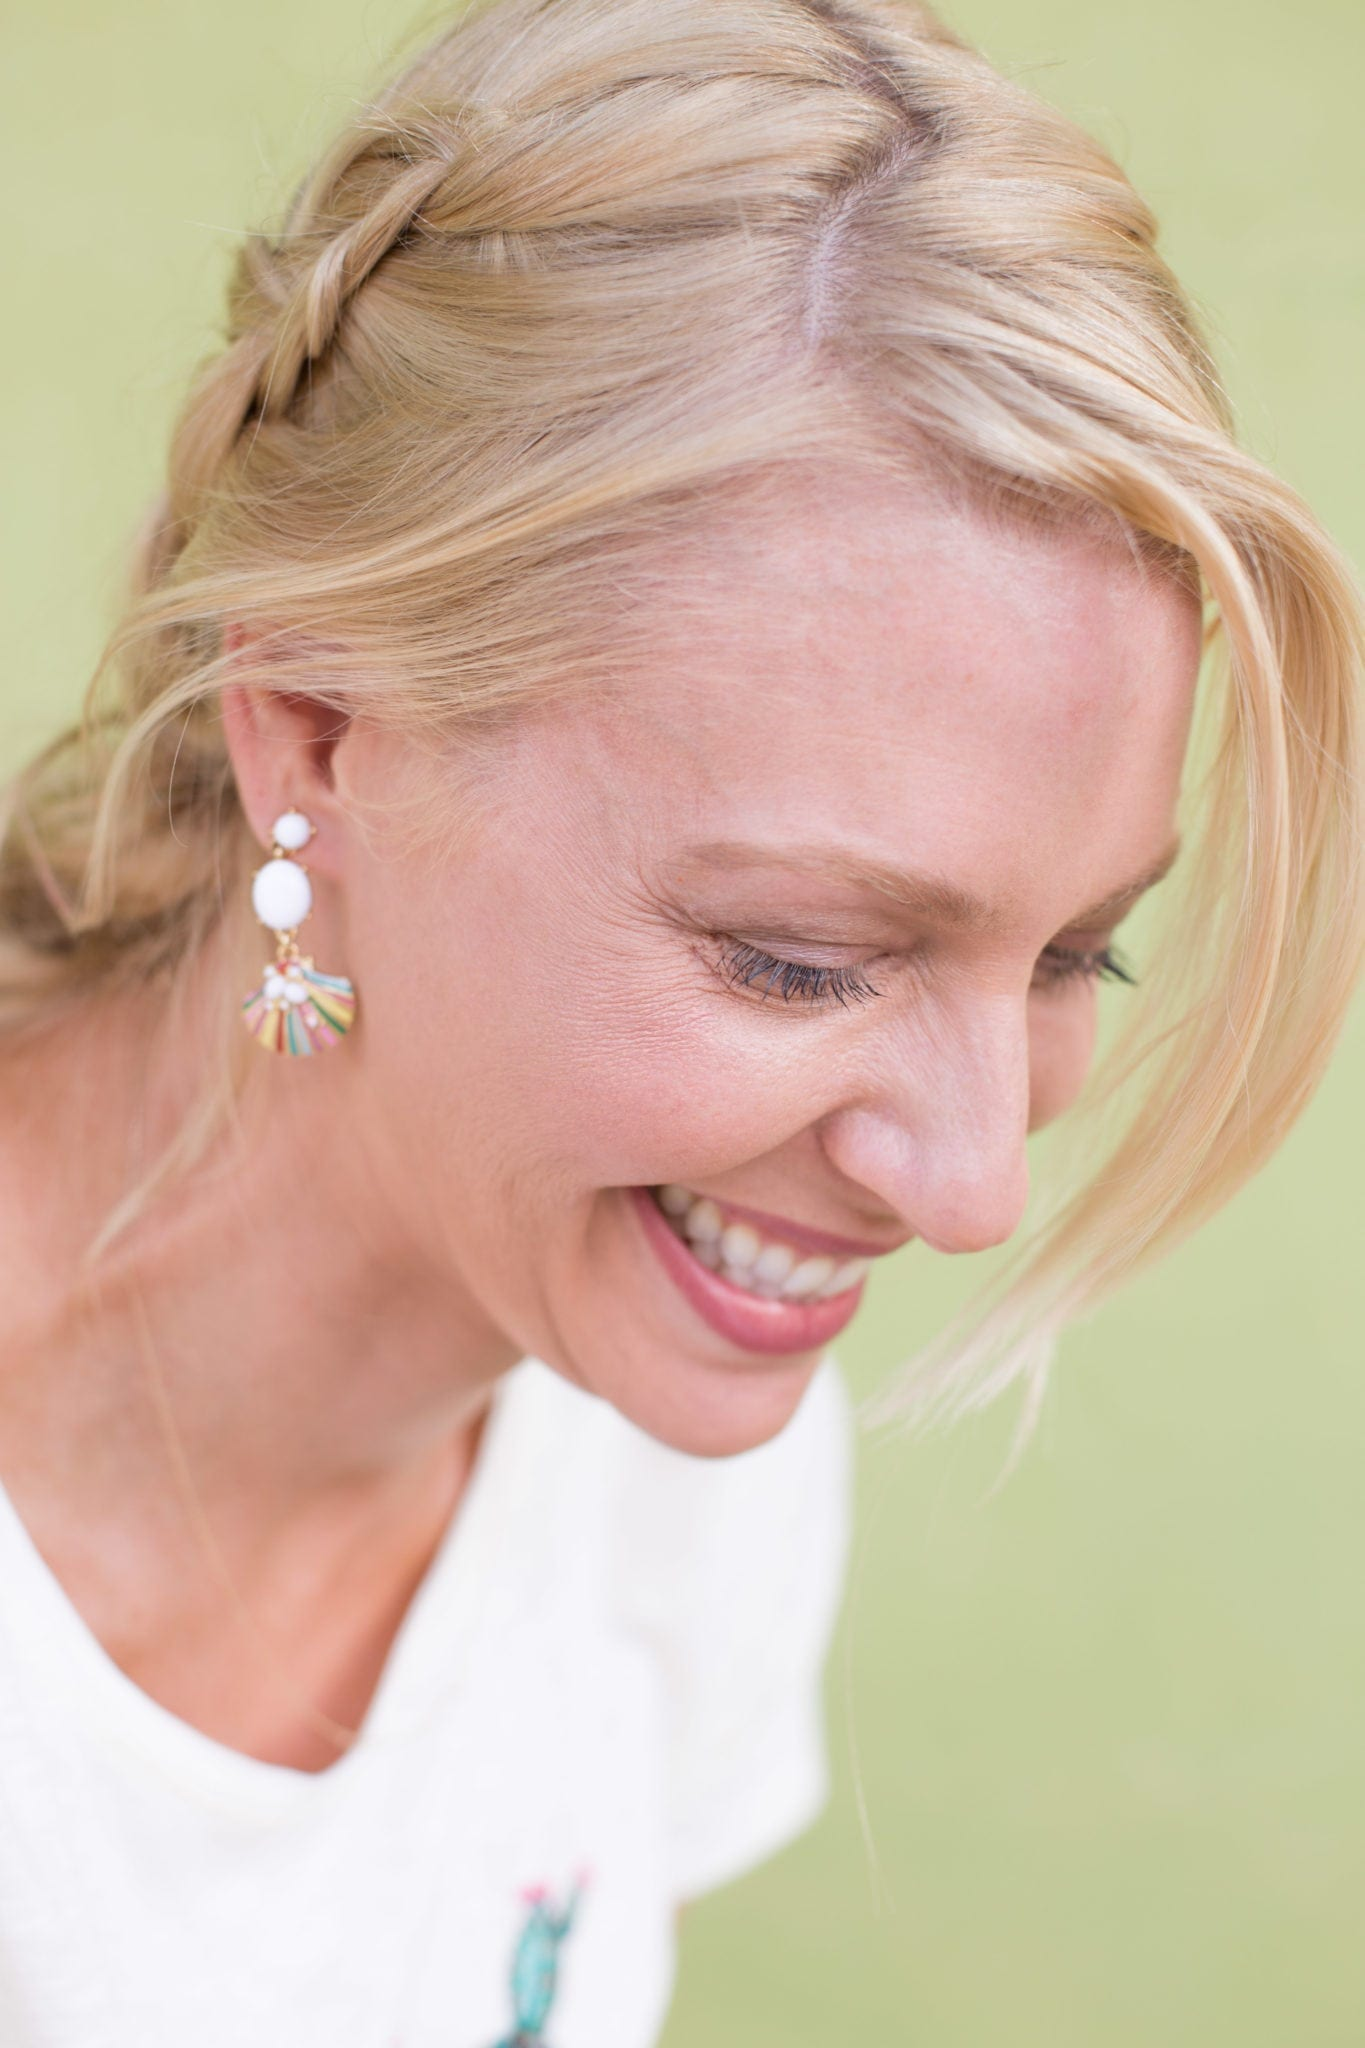 Talbots jewelry. Earrings in colorful summer hues.